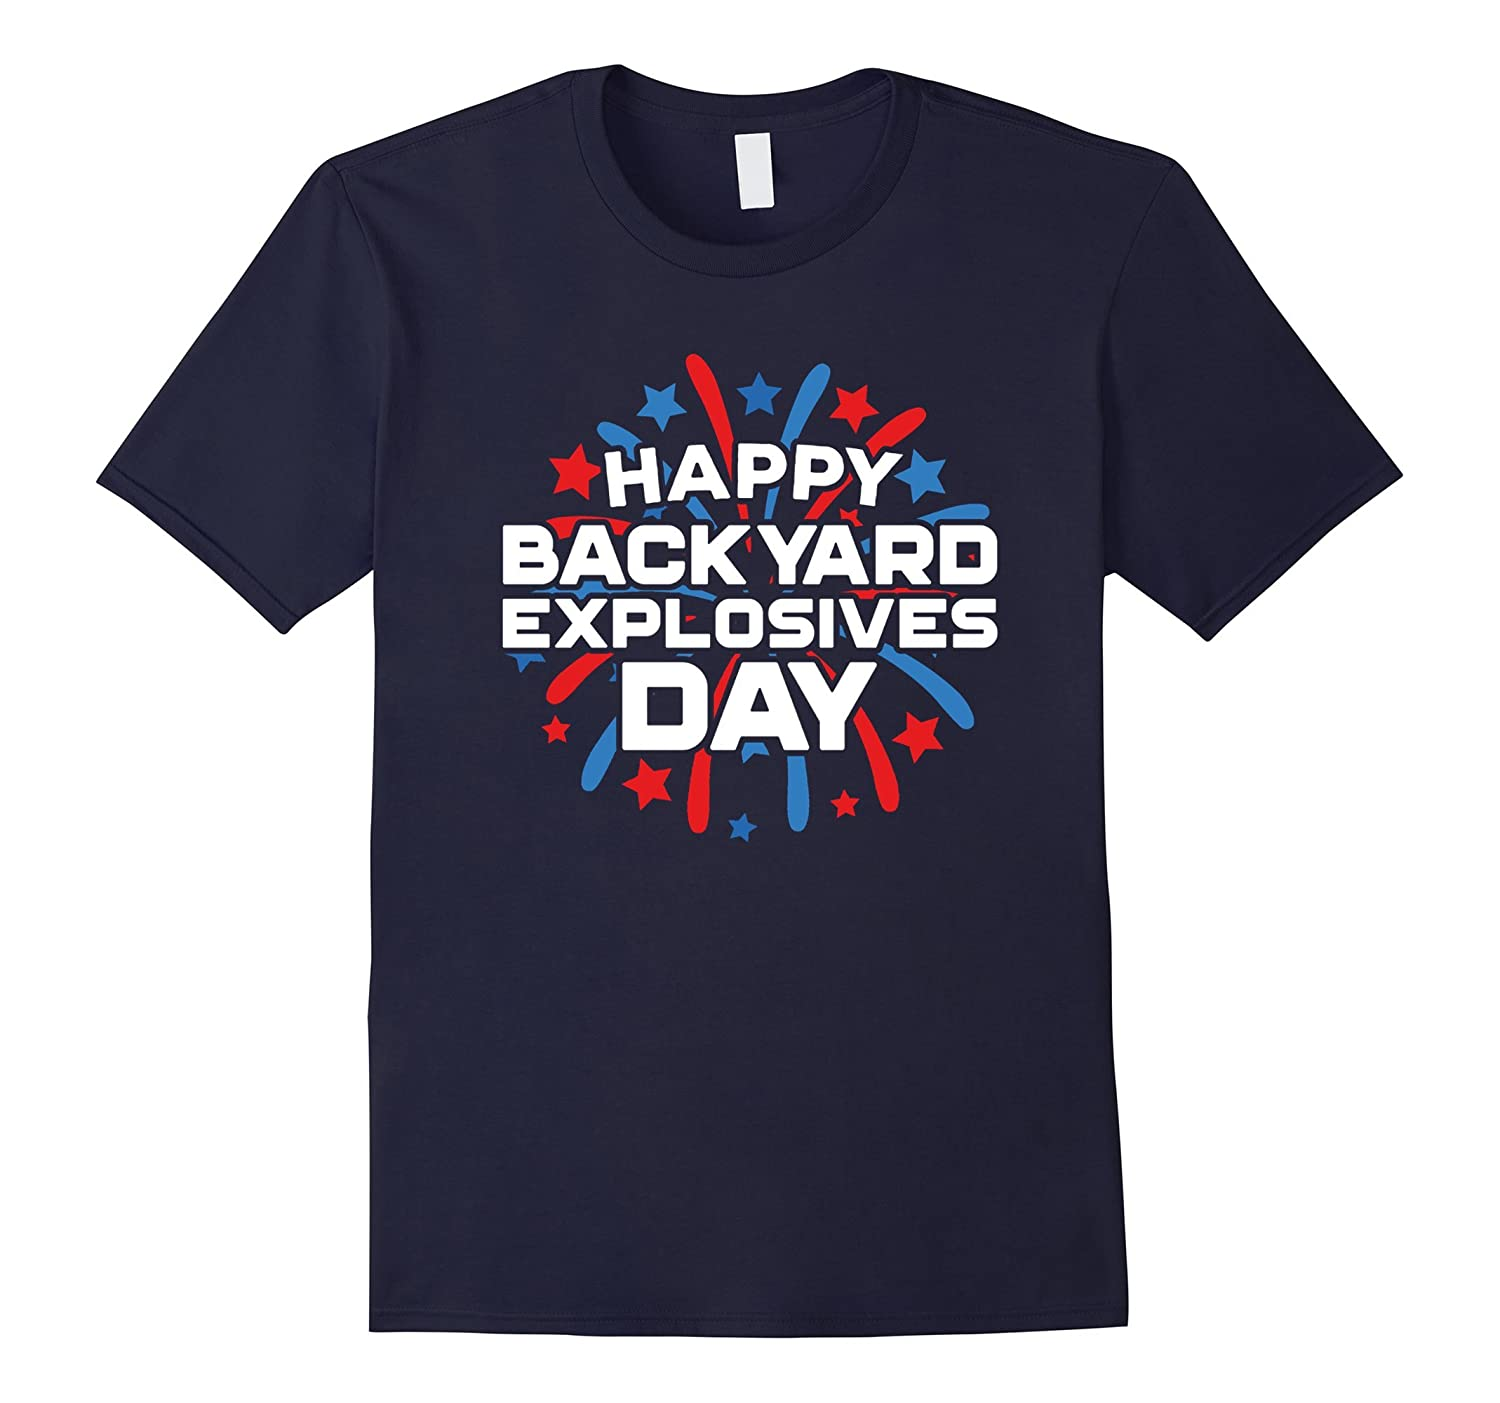 4th Of July T-Shirt Happy Backyard Explosives Day Kids Adult-TH